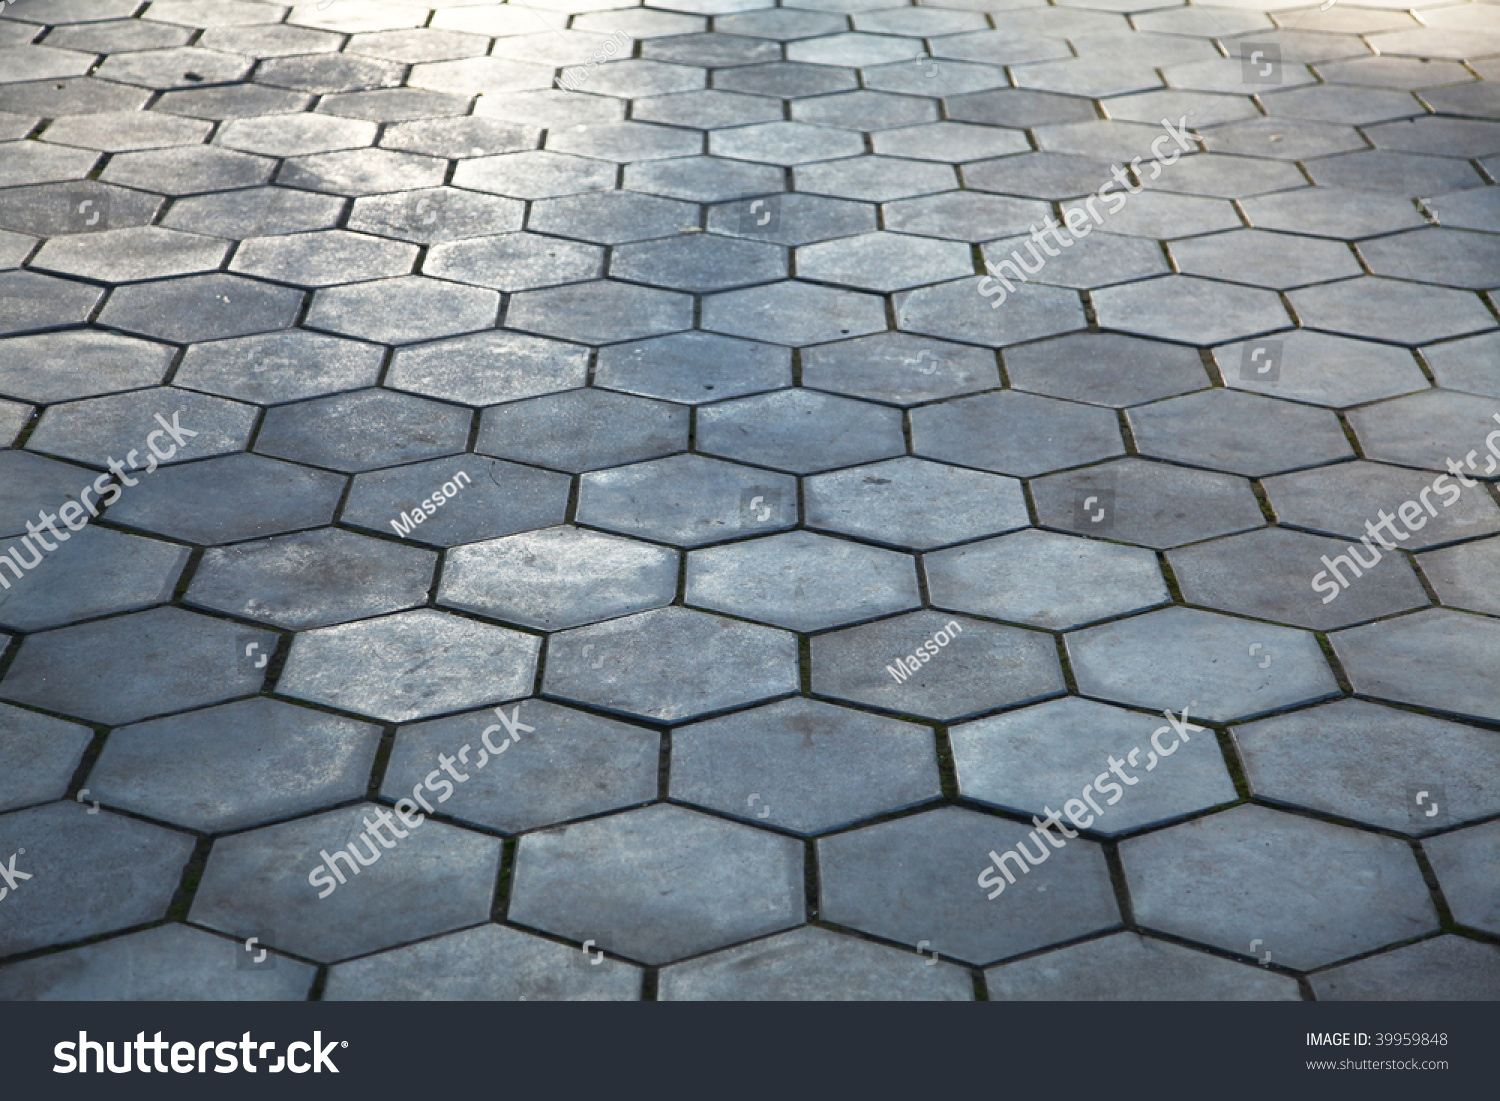 Cobblestone Pavement Paving Stock Photo 39959848